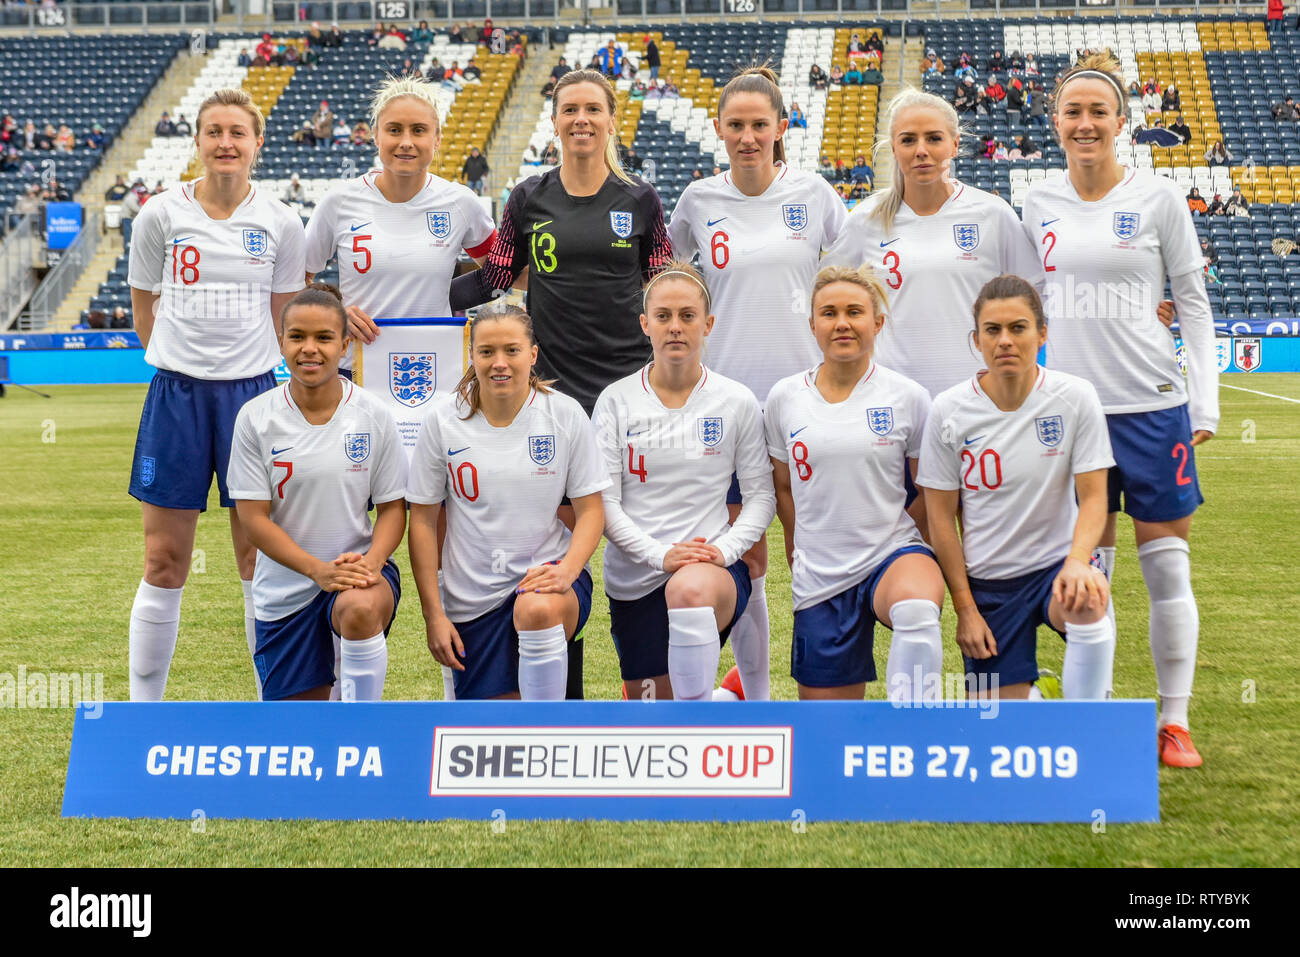 England Women's Football National Team at the SheBelieves Cup Beth Mead Alex Greenwood Rachel Daly Ellen White Nikita Parris Steph Houghton - Stock Image